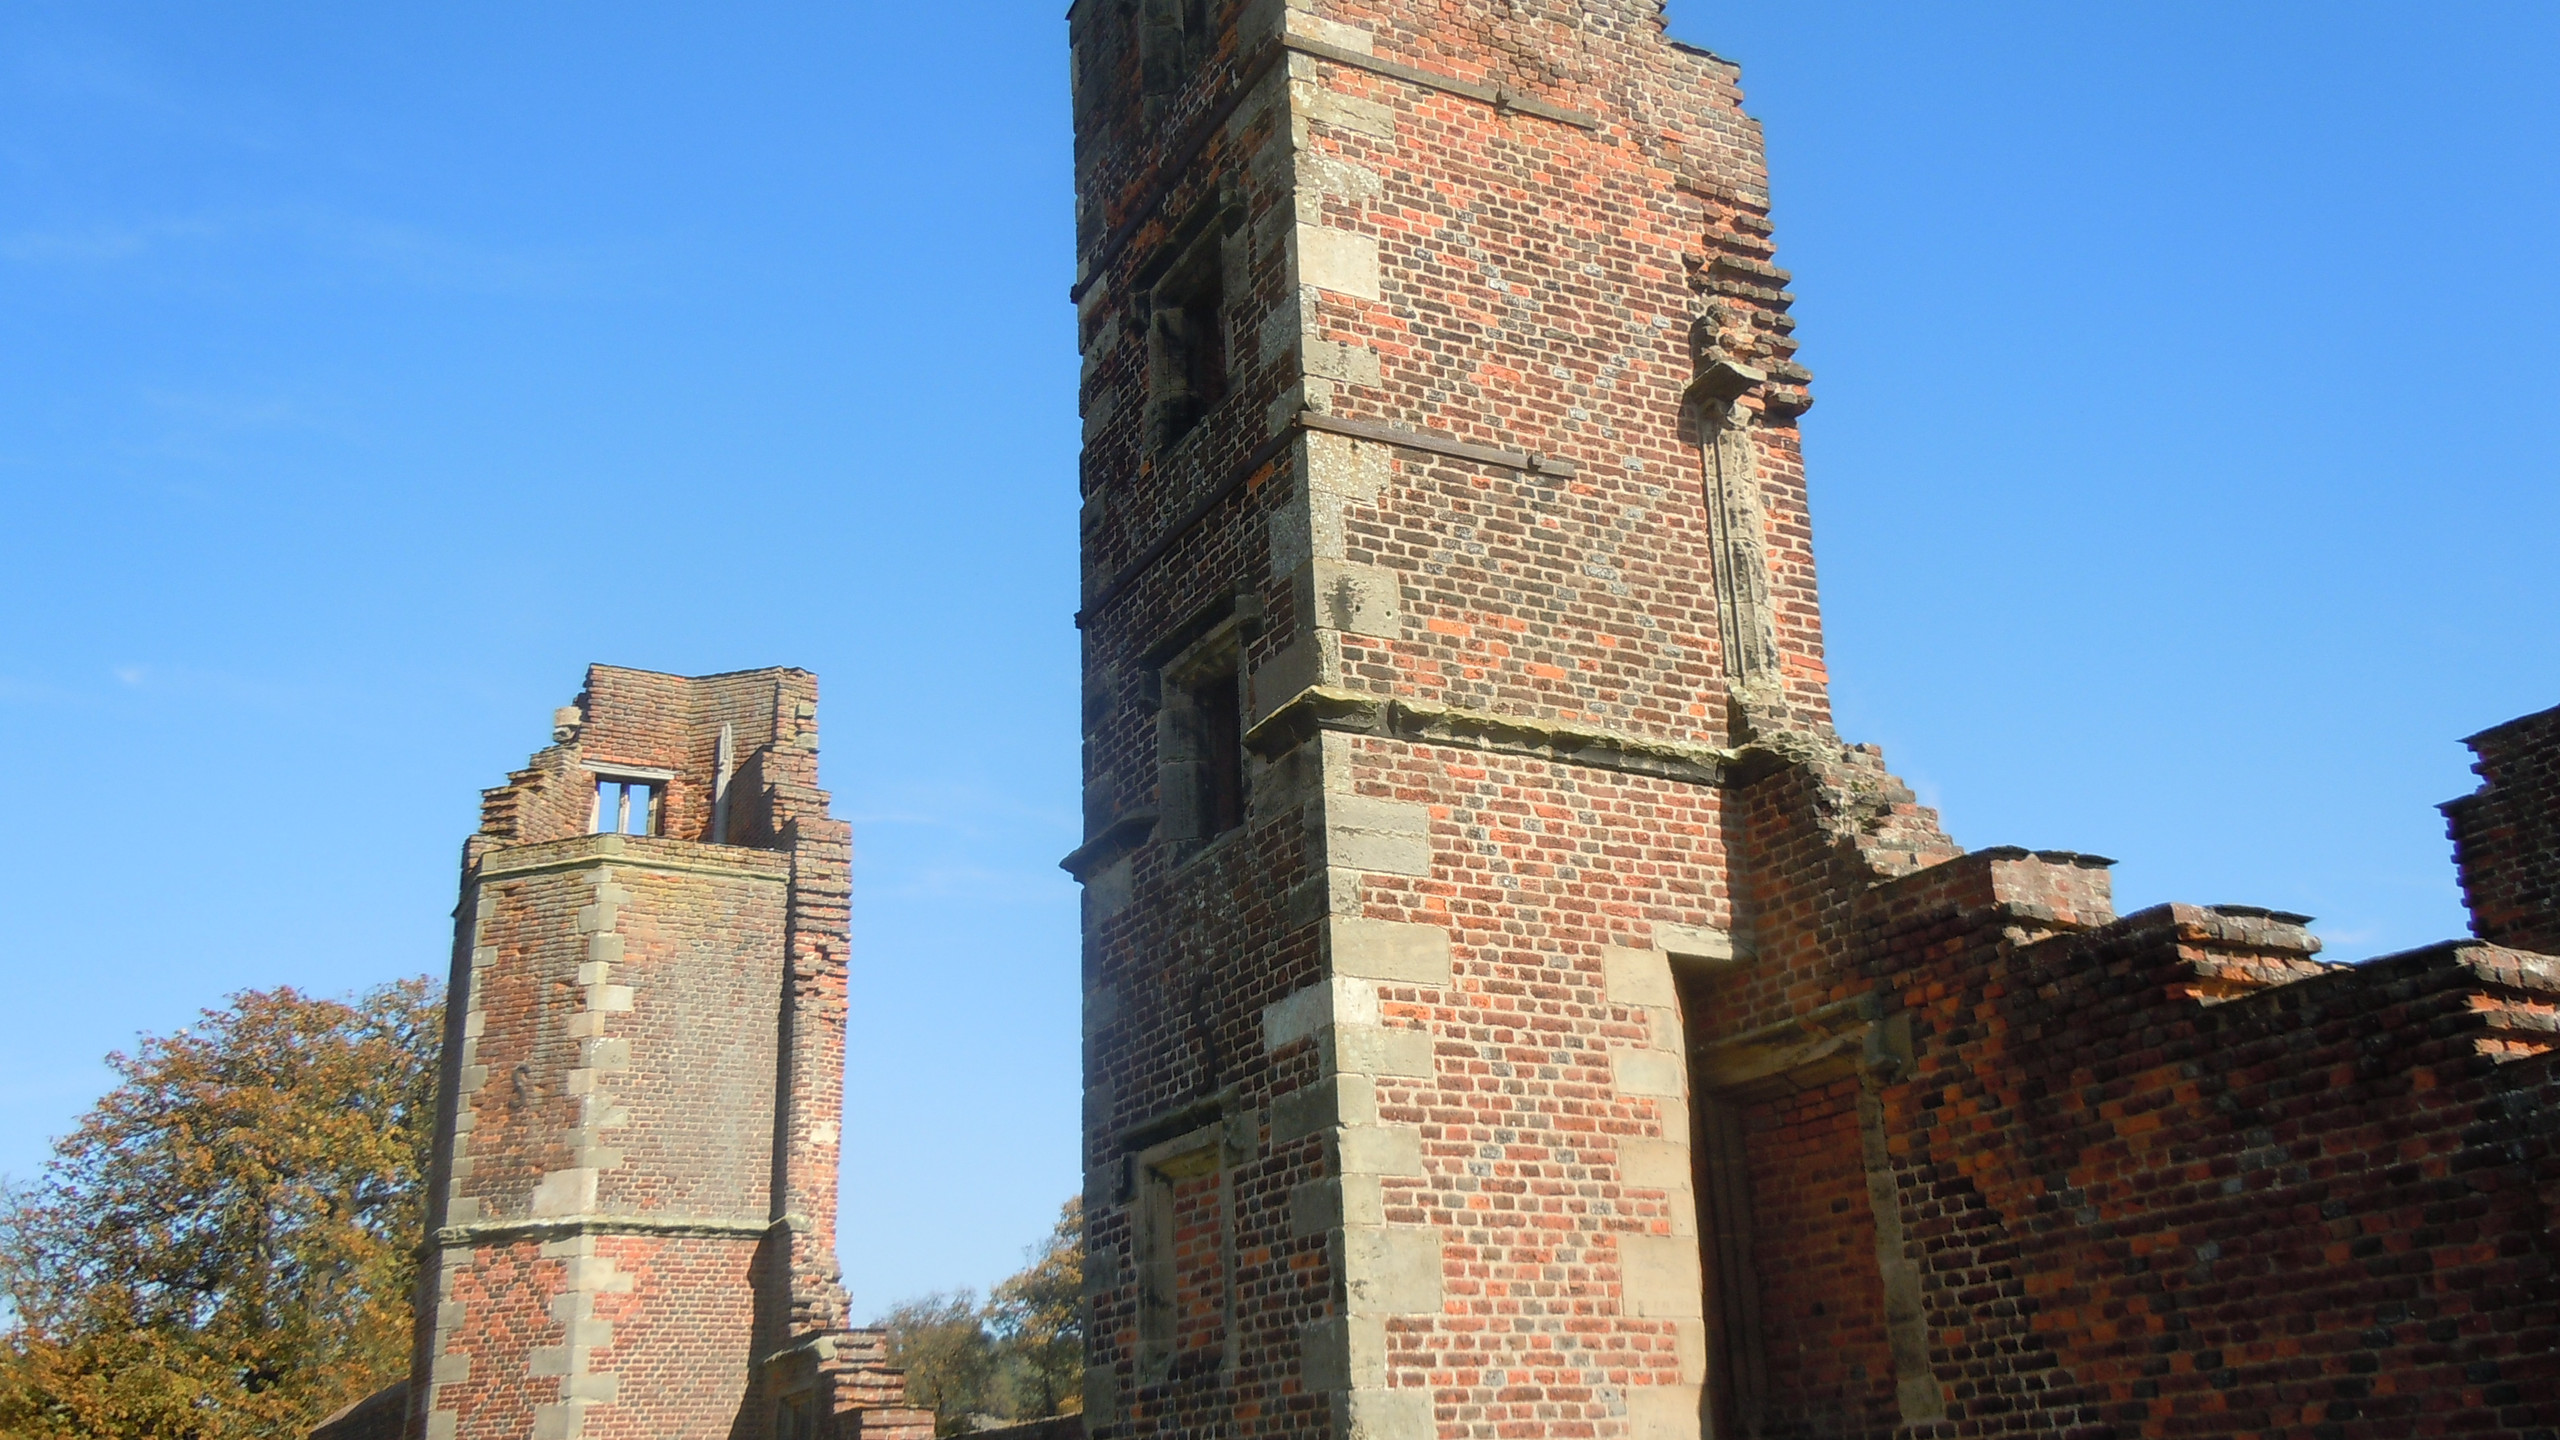 The remains of Bradgate House, home of the Grey family, Lady Jane Grey, Queen of England for nine days was born here. in 1537..